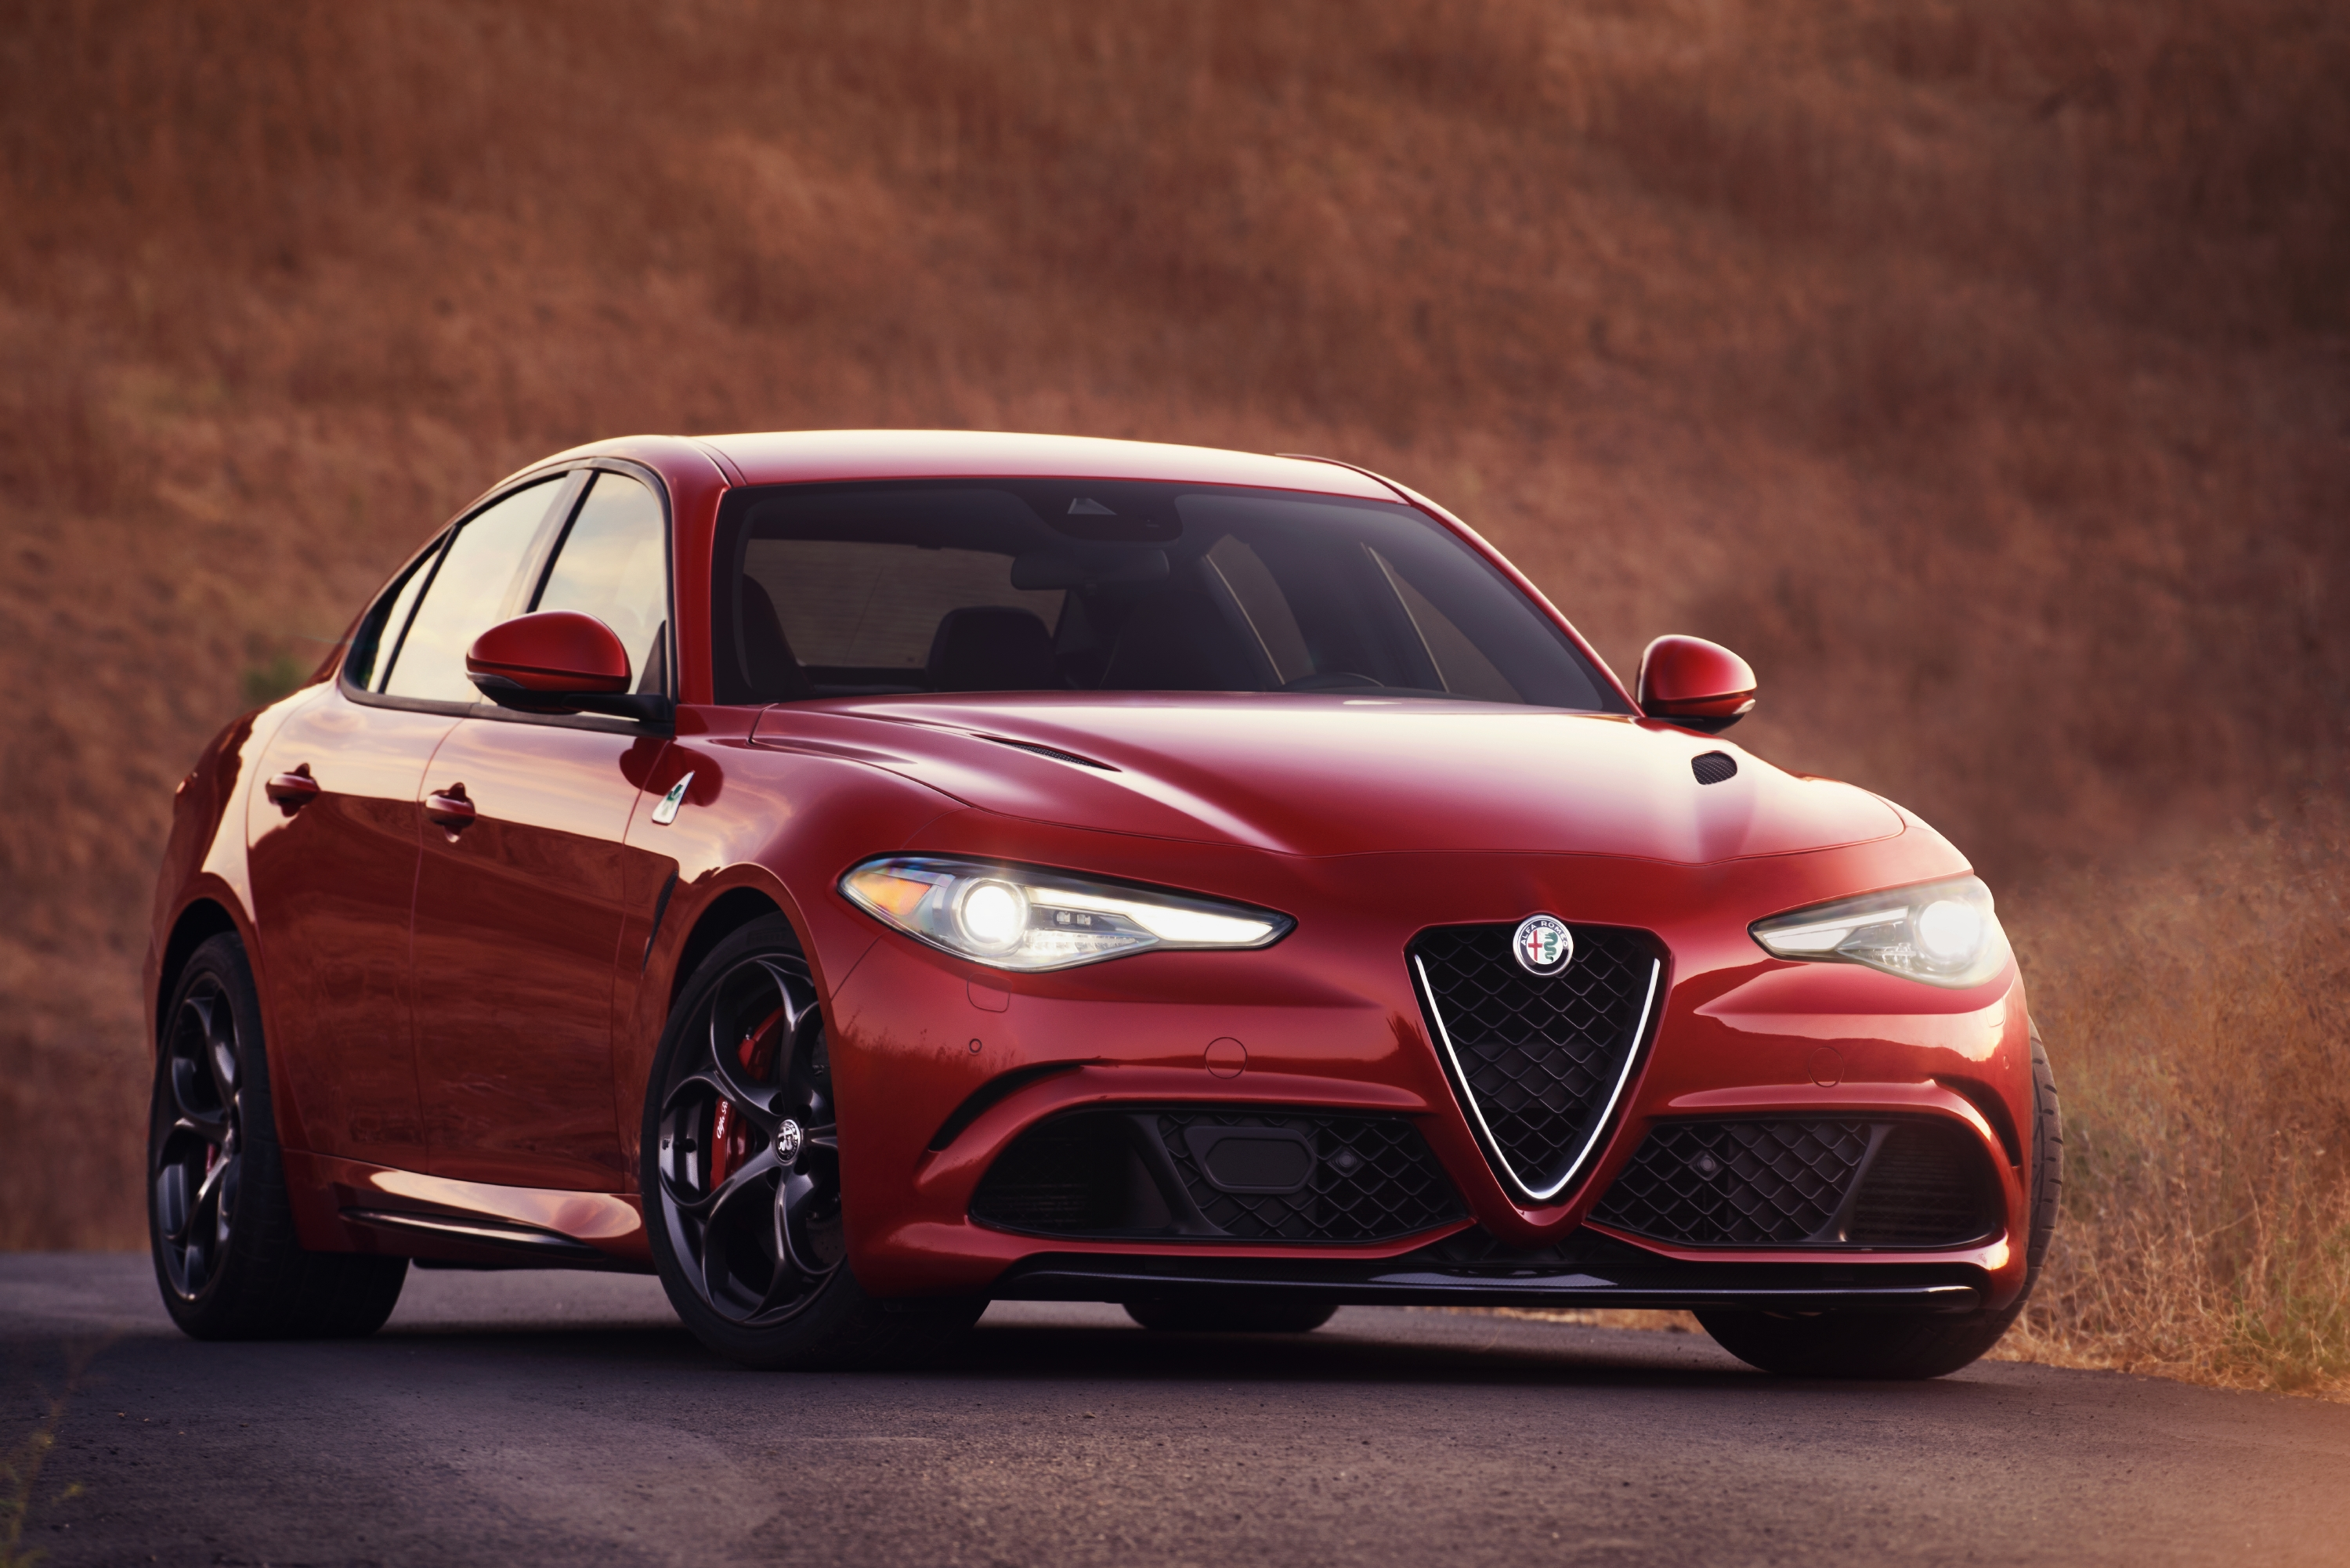 For a bigger budget, or just to dream, see the Alfa Romeo Giulia Quadrifoglio.